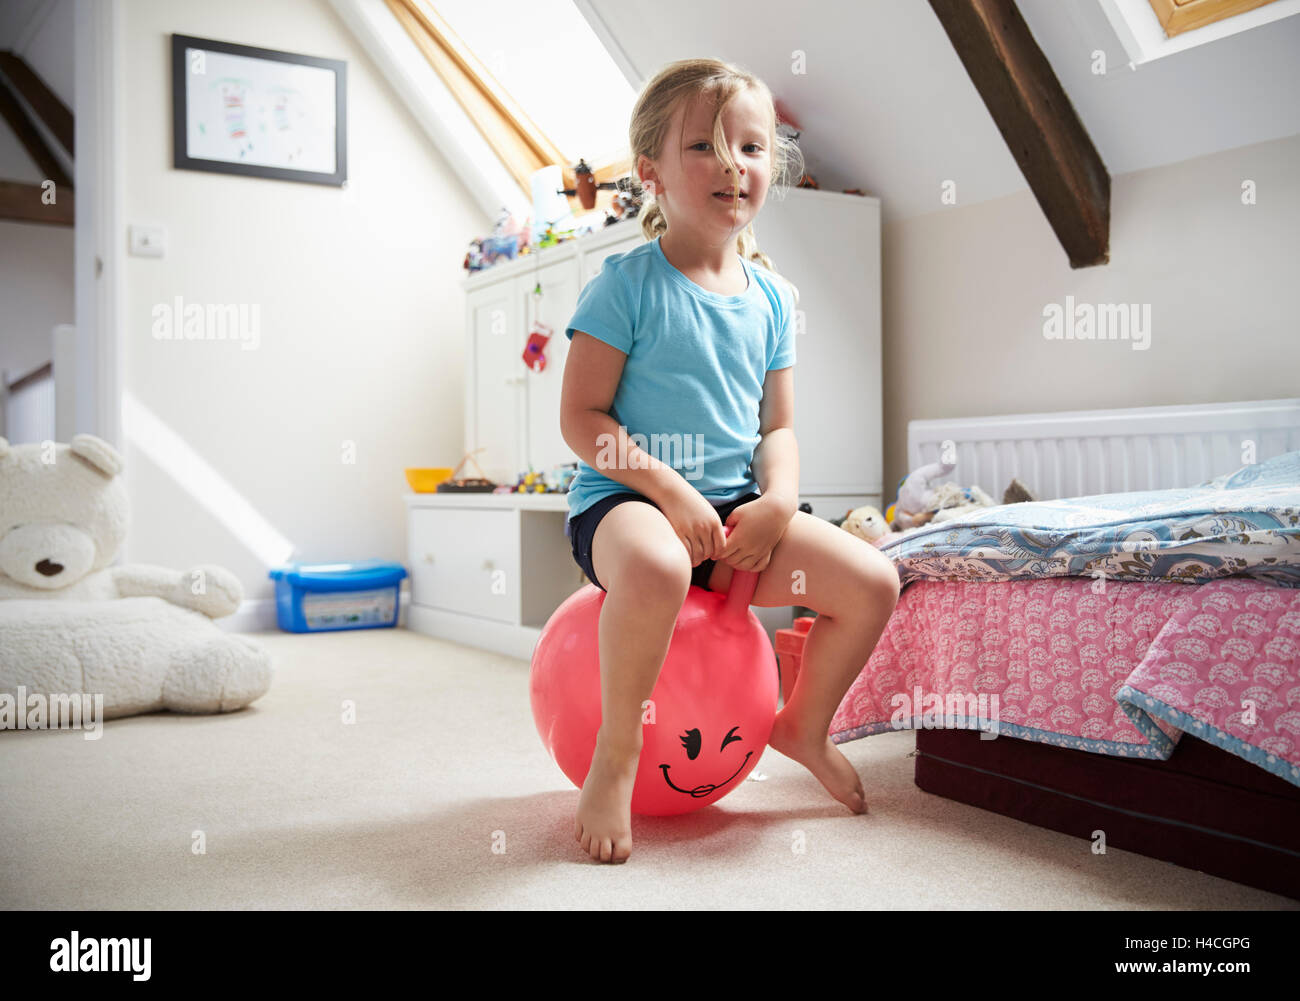 Girl Bounces On Inflatable Ball In Playroom - Stock Image